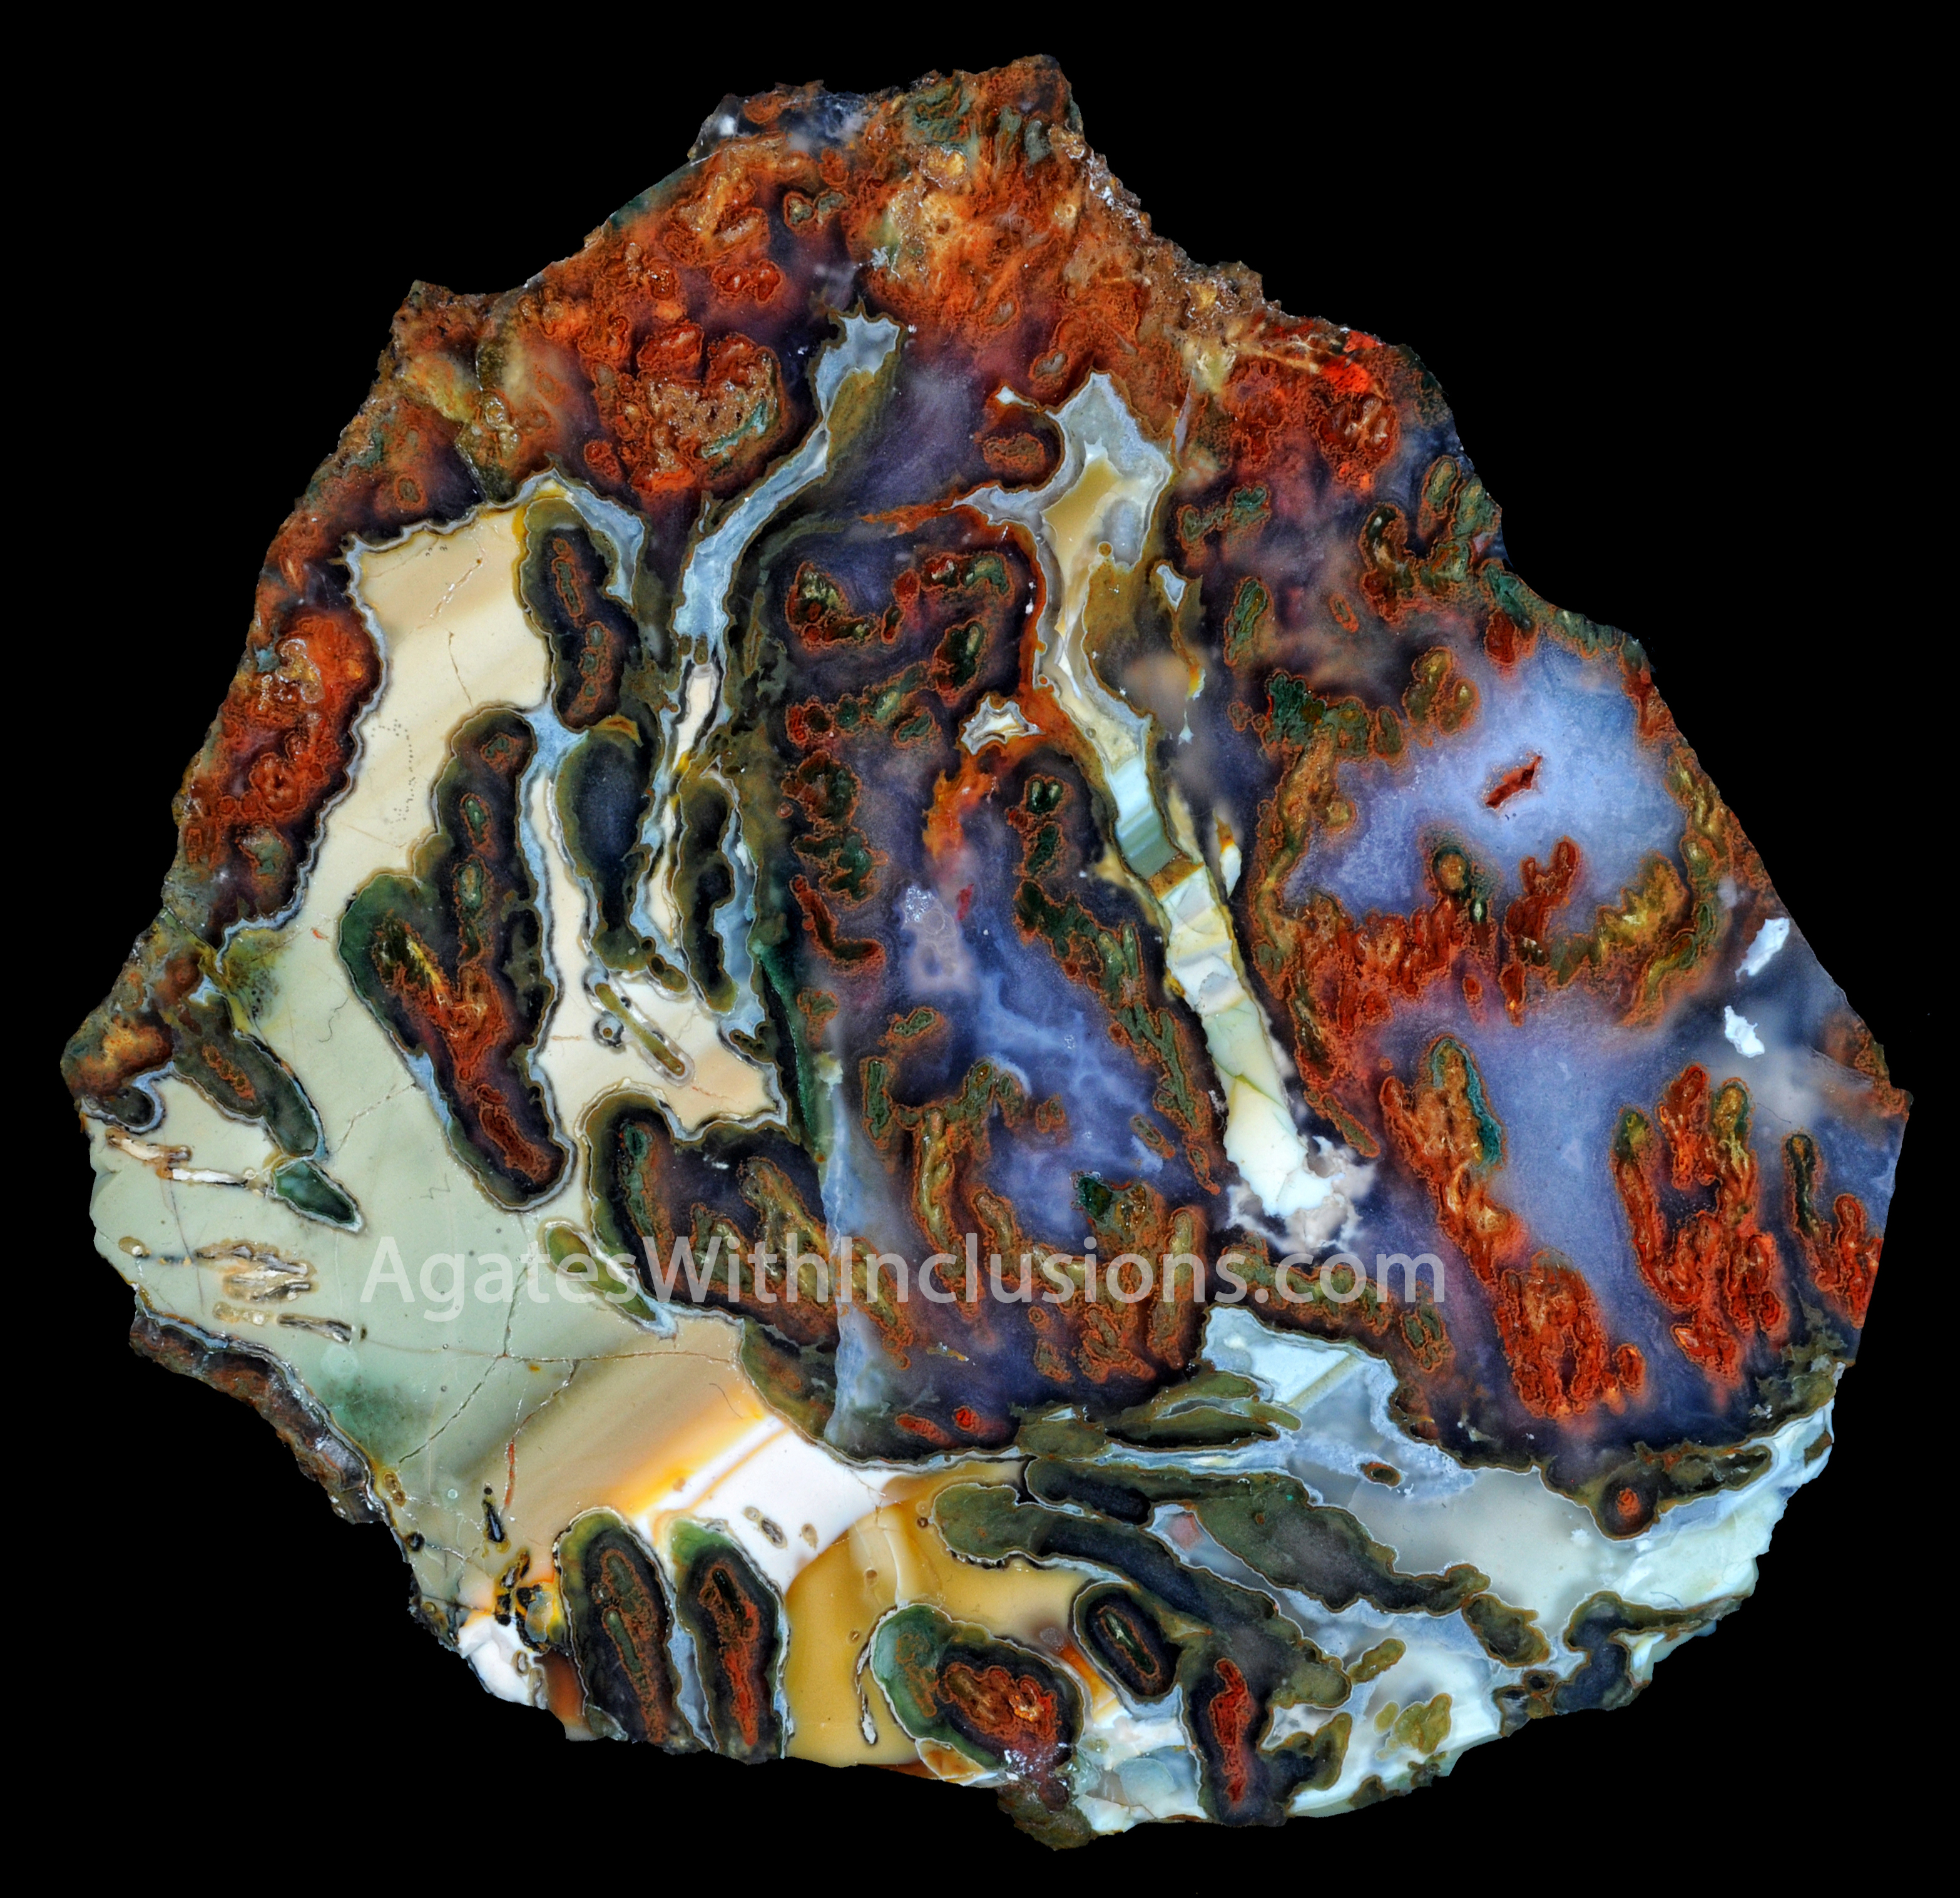 Nevada – Agates With Inclusions